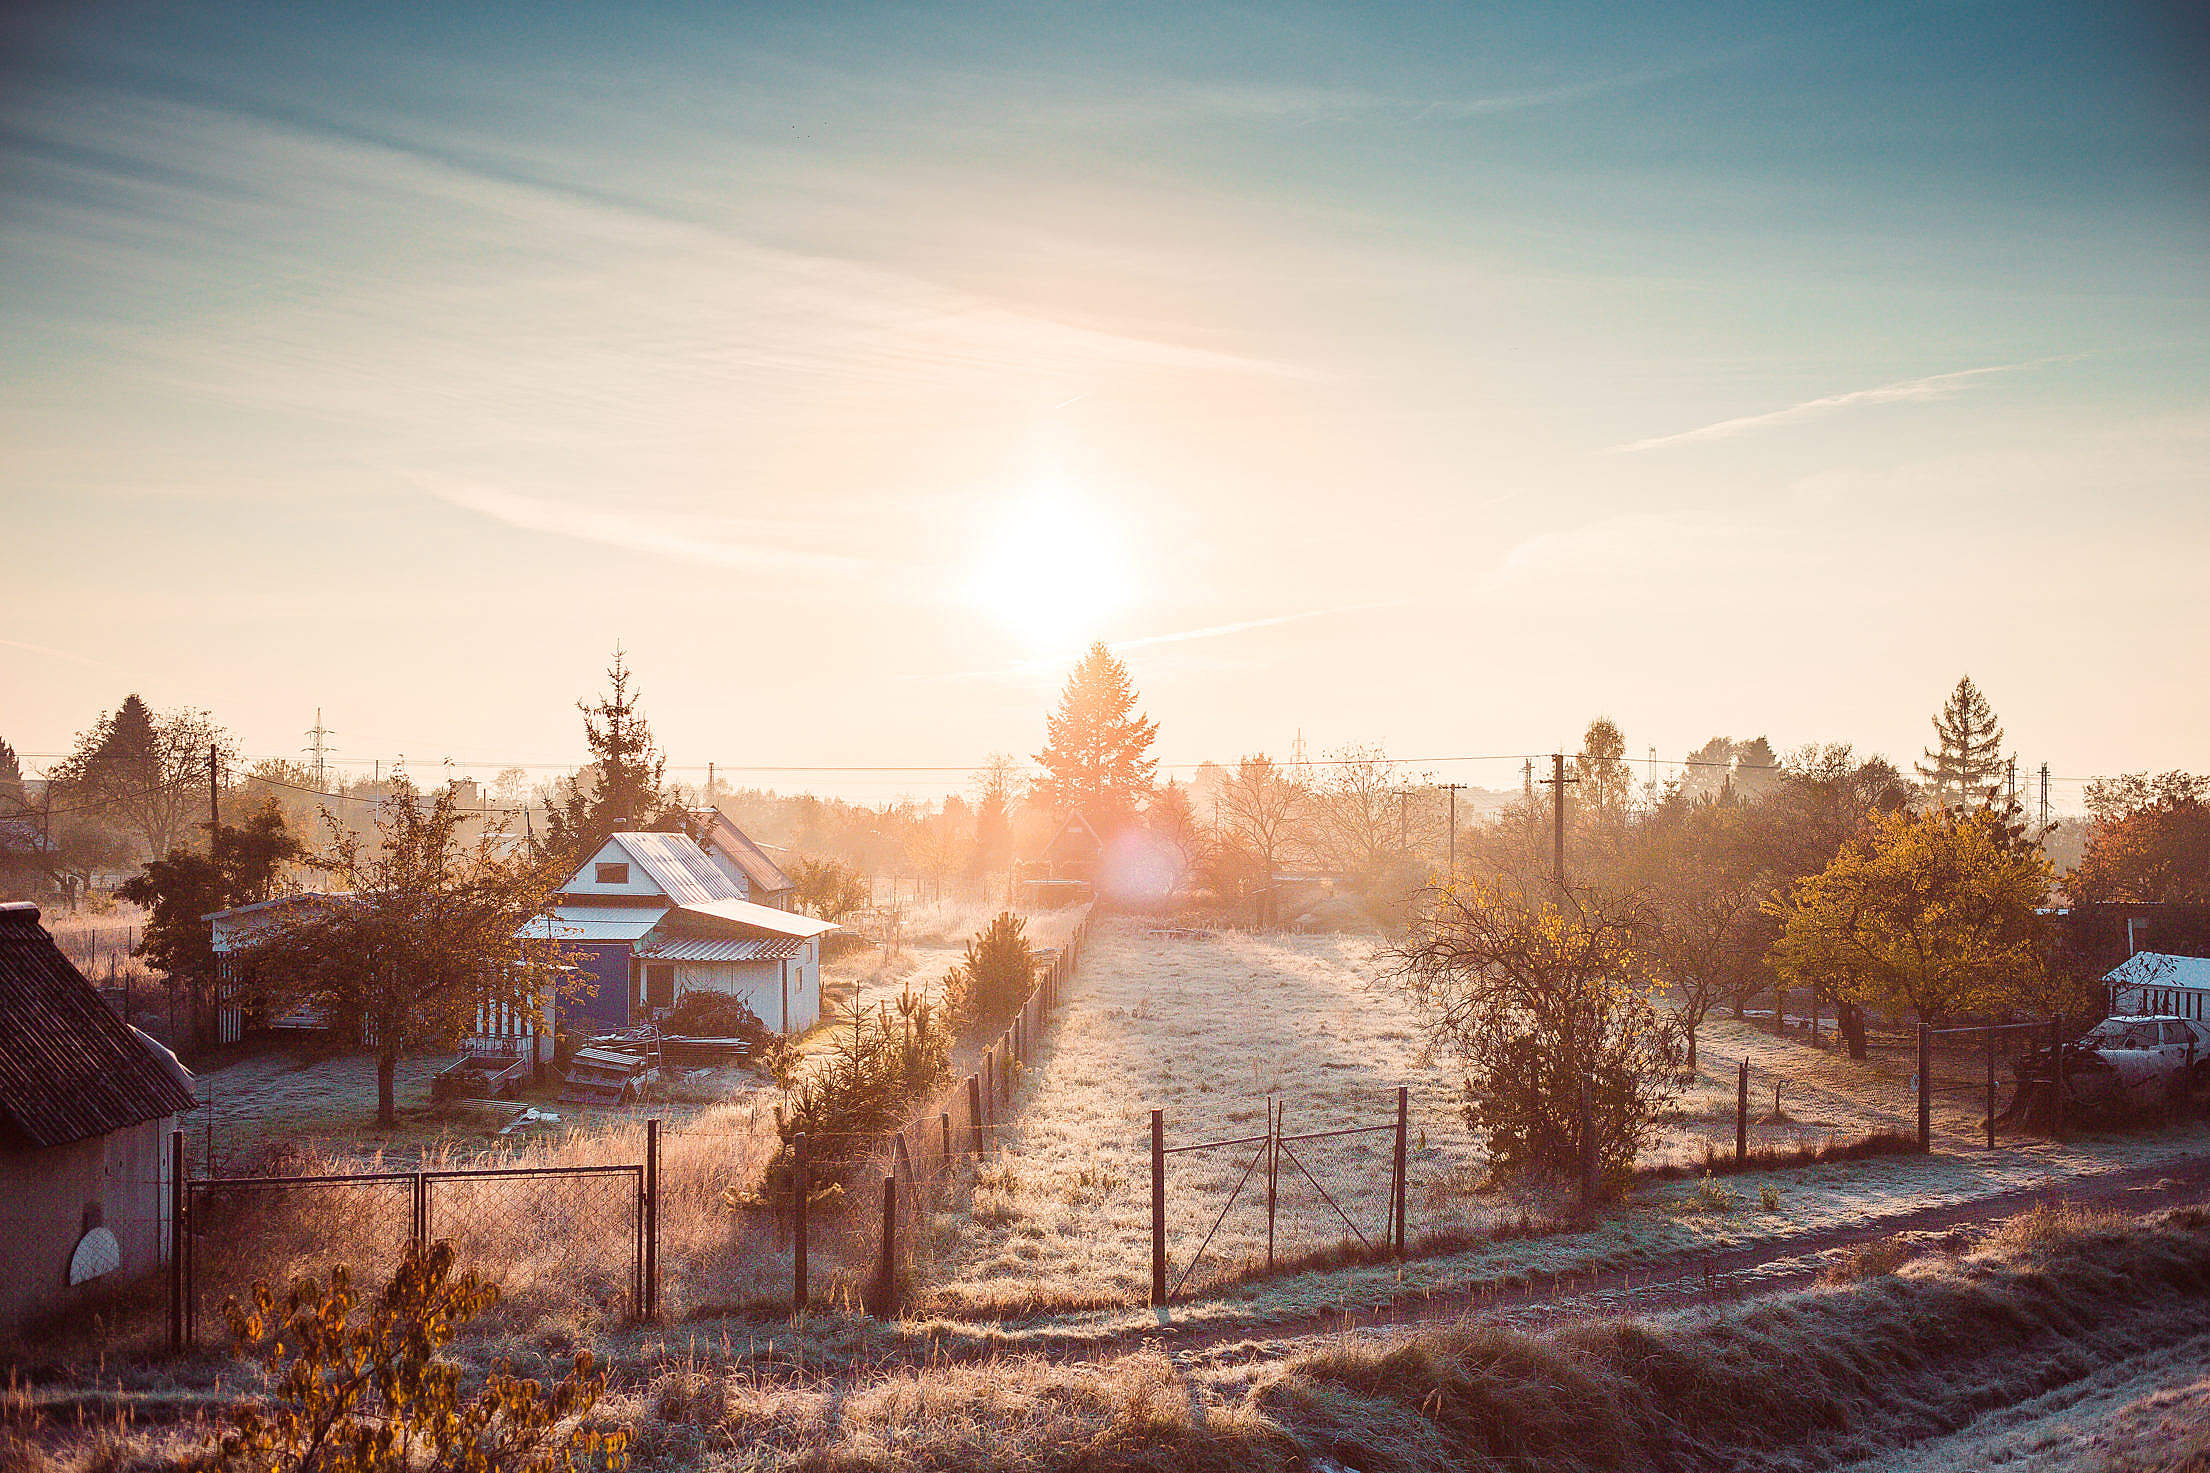 Cold Winter Morning over Gardening Colony